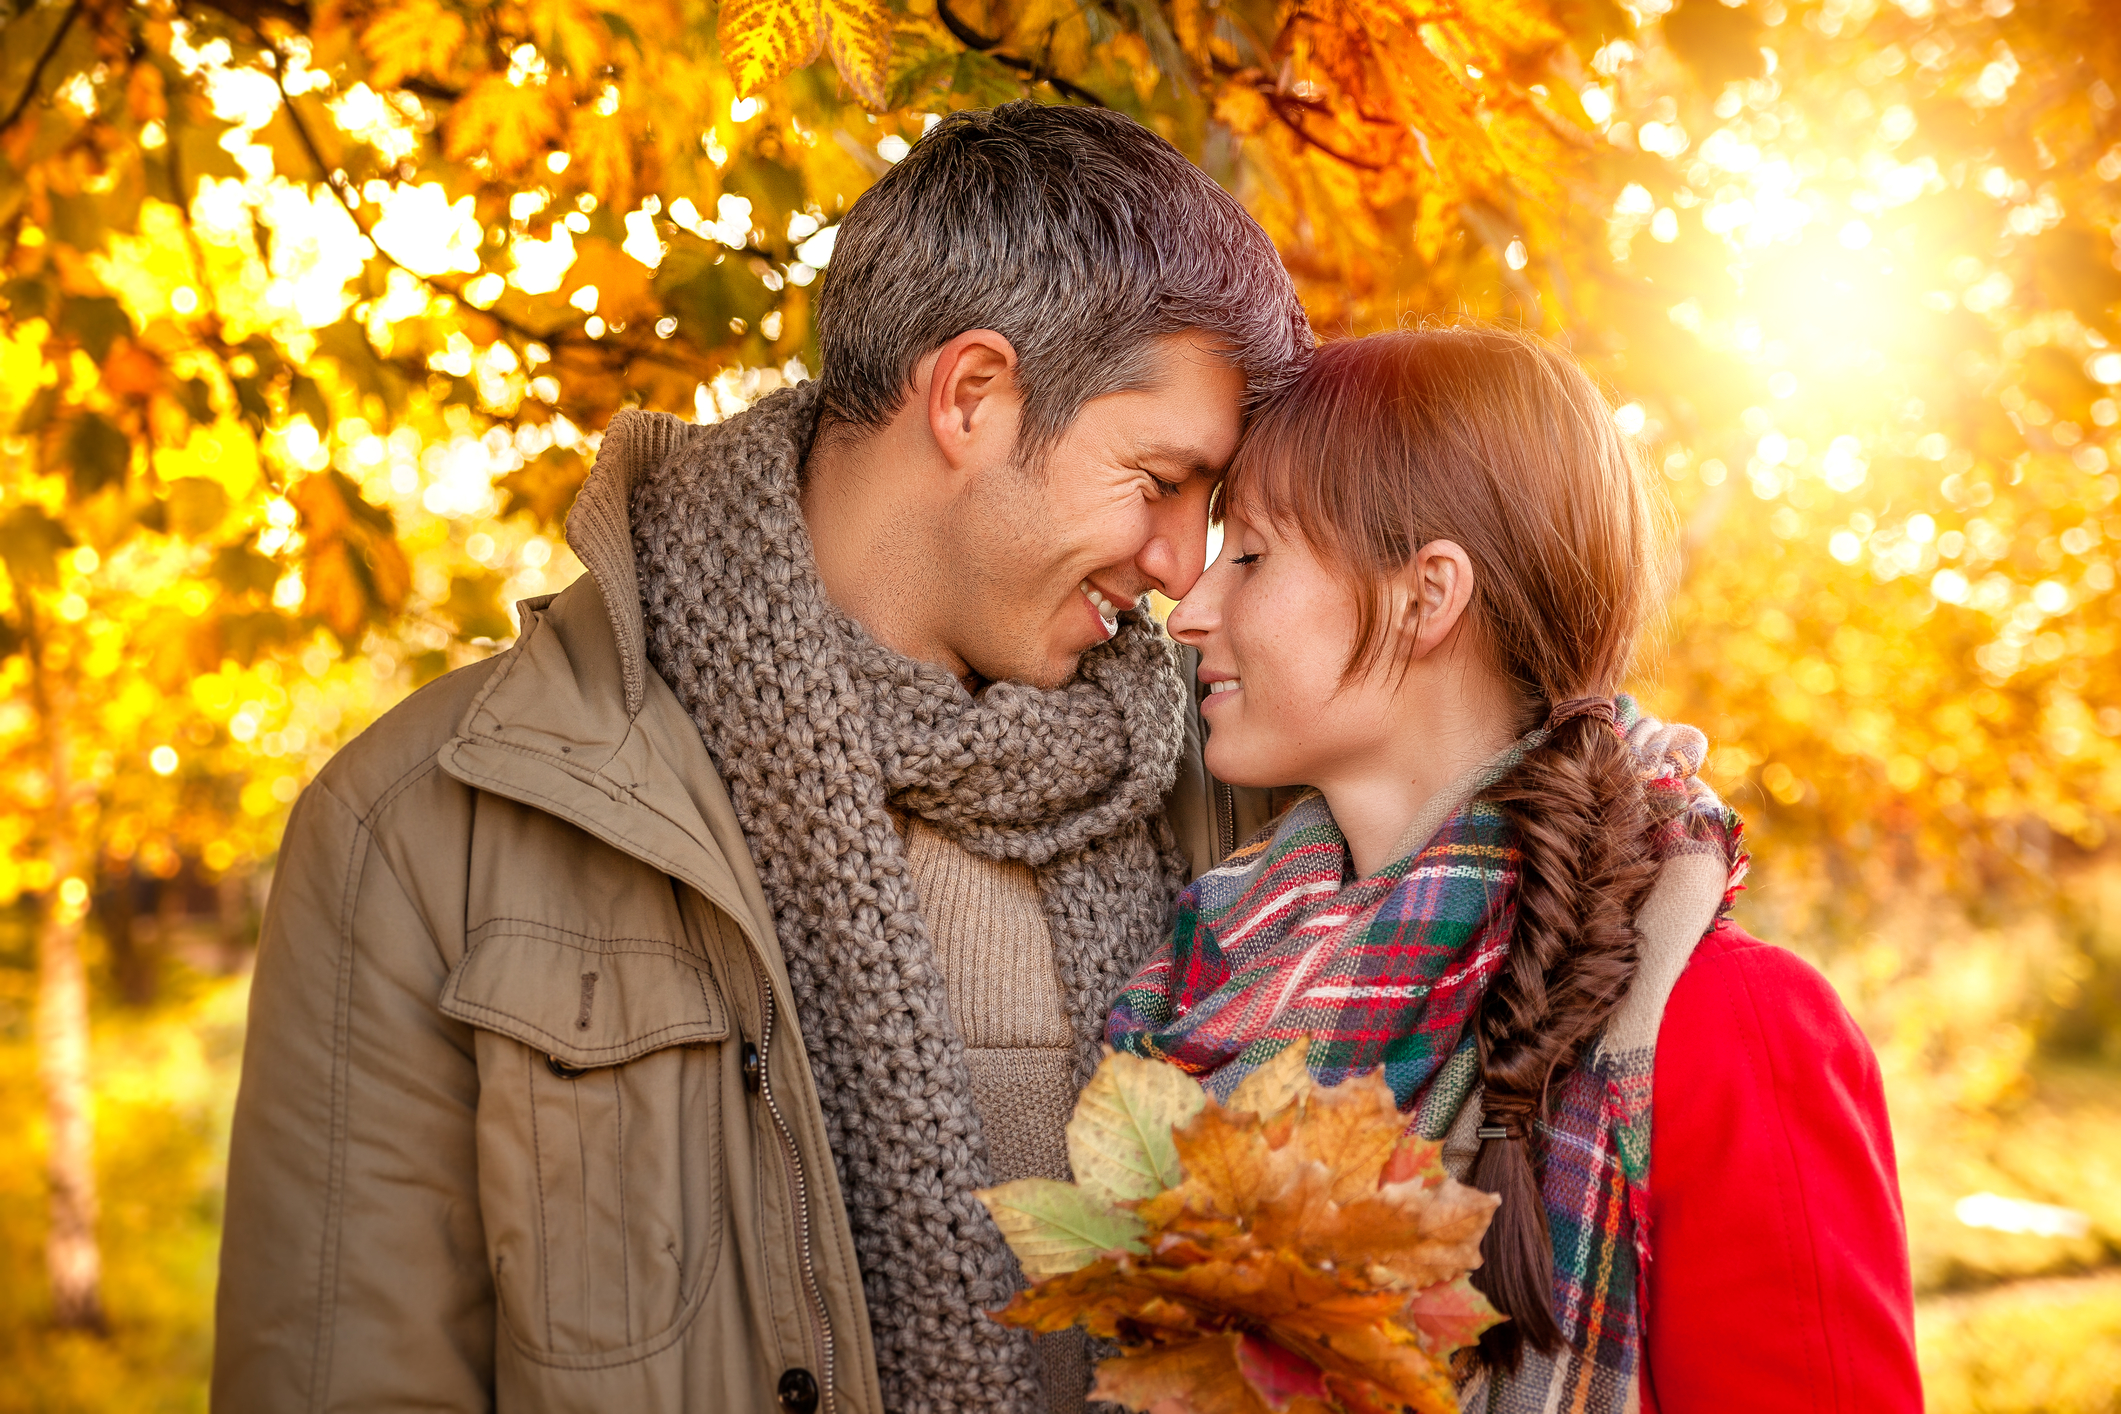 Man and woman hugging in a forest filled with fall foliage.